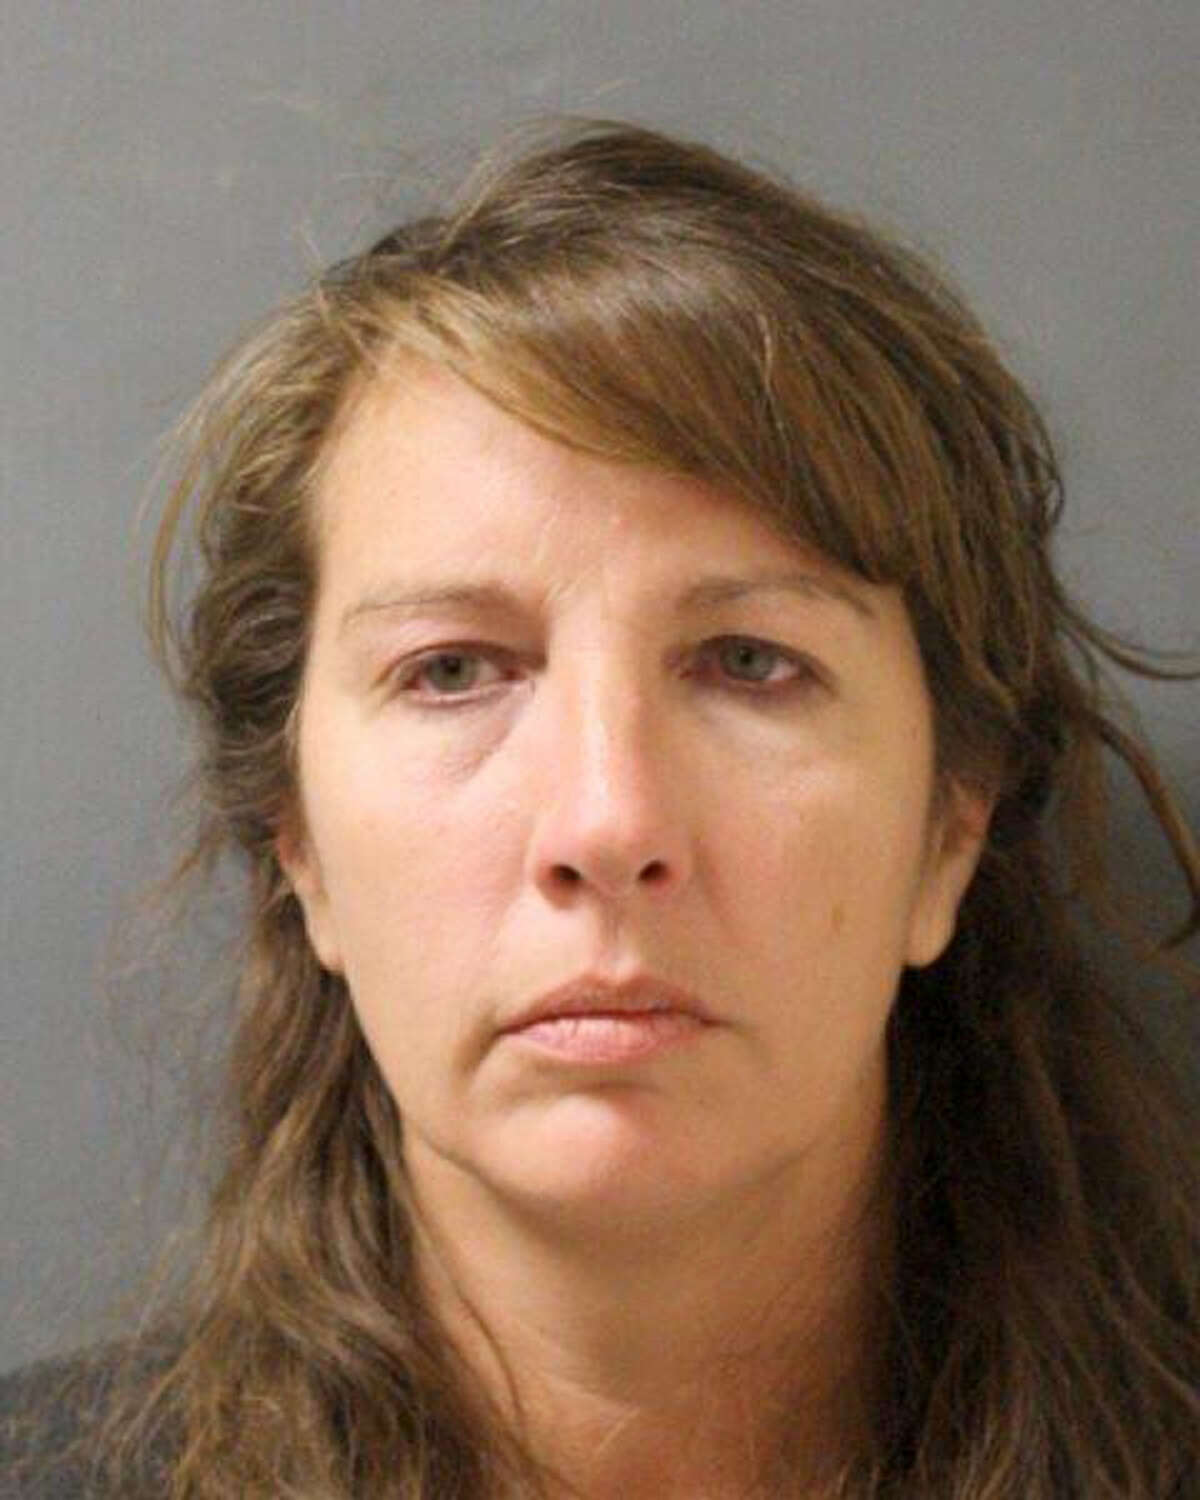 This undated photo provided by the Harris County Sheriff's Office shows the booking photo of Houston-area sheriff's deputy Chauna Thompson. The Harris County sheriff's office said Friday, June 9, 2017, that Thompson and her husband Terry Thompson have posted bail and that they have a court hearing scheduled for Tuesday, after they surrendered to authorities late Thursday after a grand jury that day handed up separate indictments against them. The Thompson's are accused of causing the May 28 death of 24-year-old John Hernandez outside a Houston-area restaurant. (Harris County Sheriff's Office via AP)